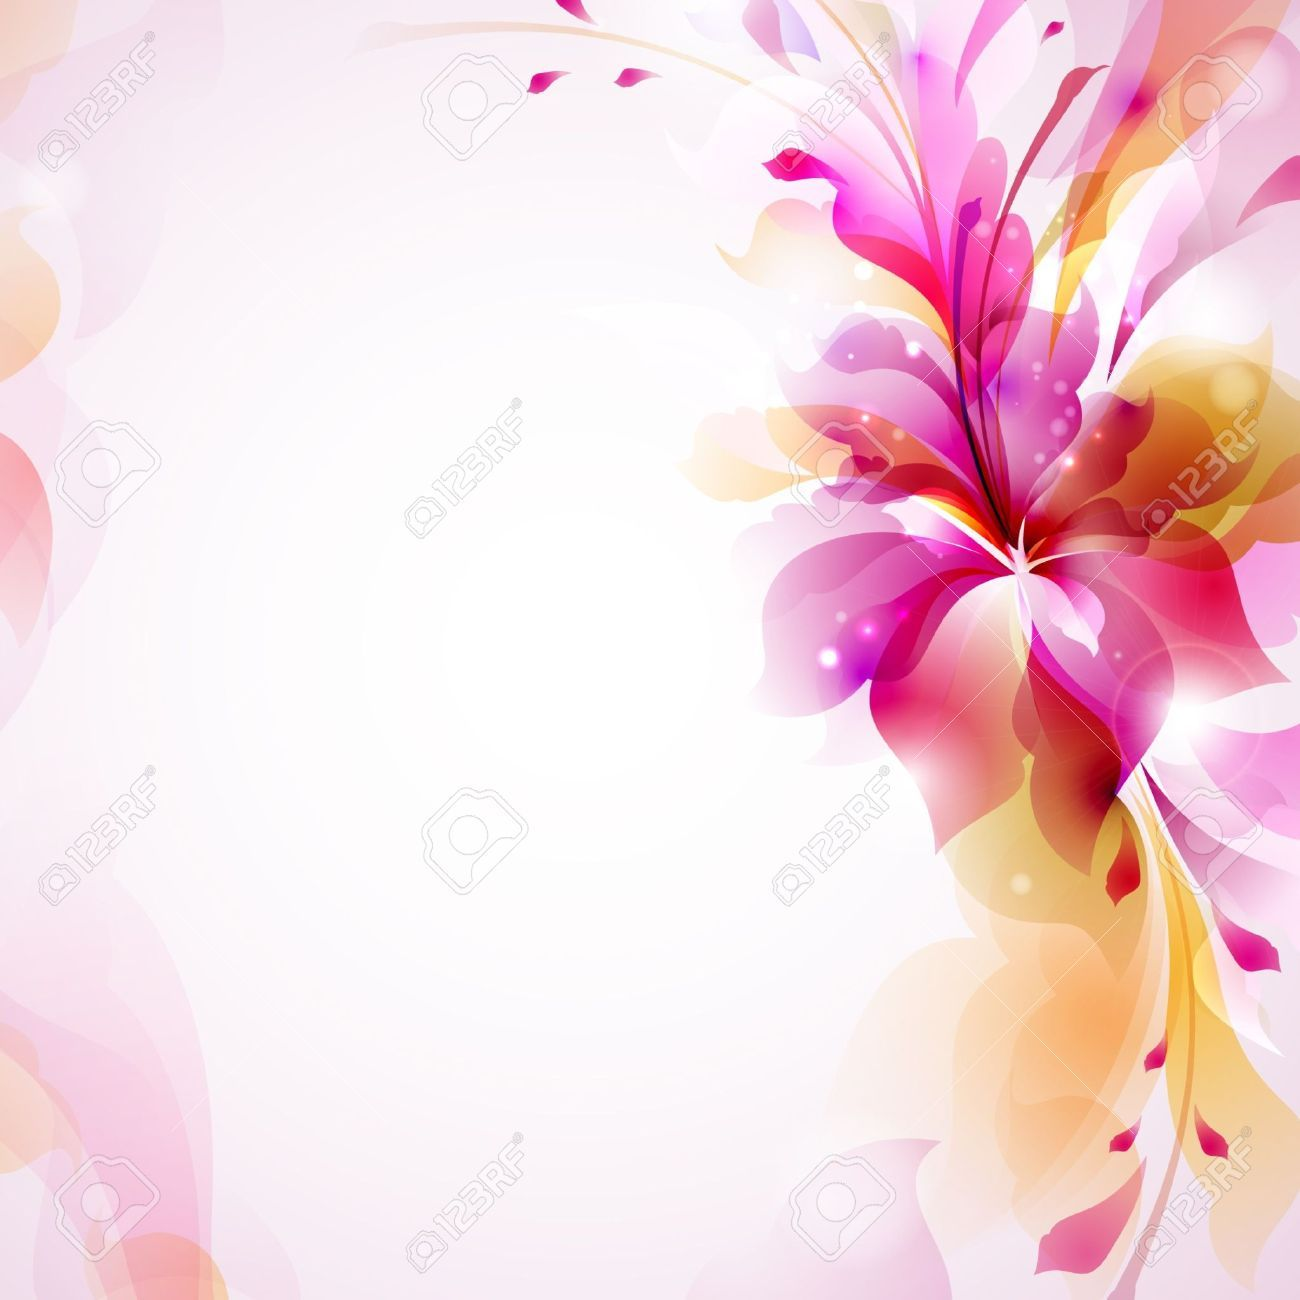 14311390-Tender-background-with-abstract-flower--Stock